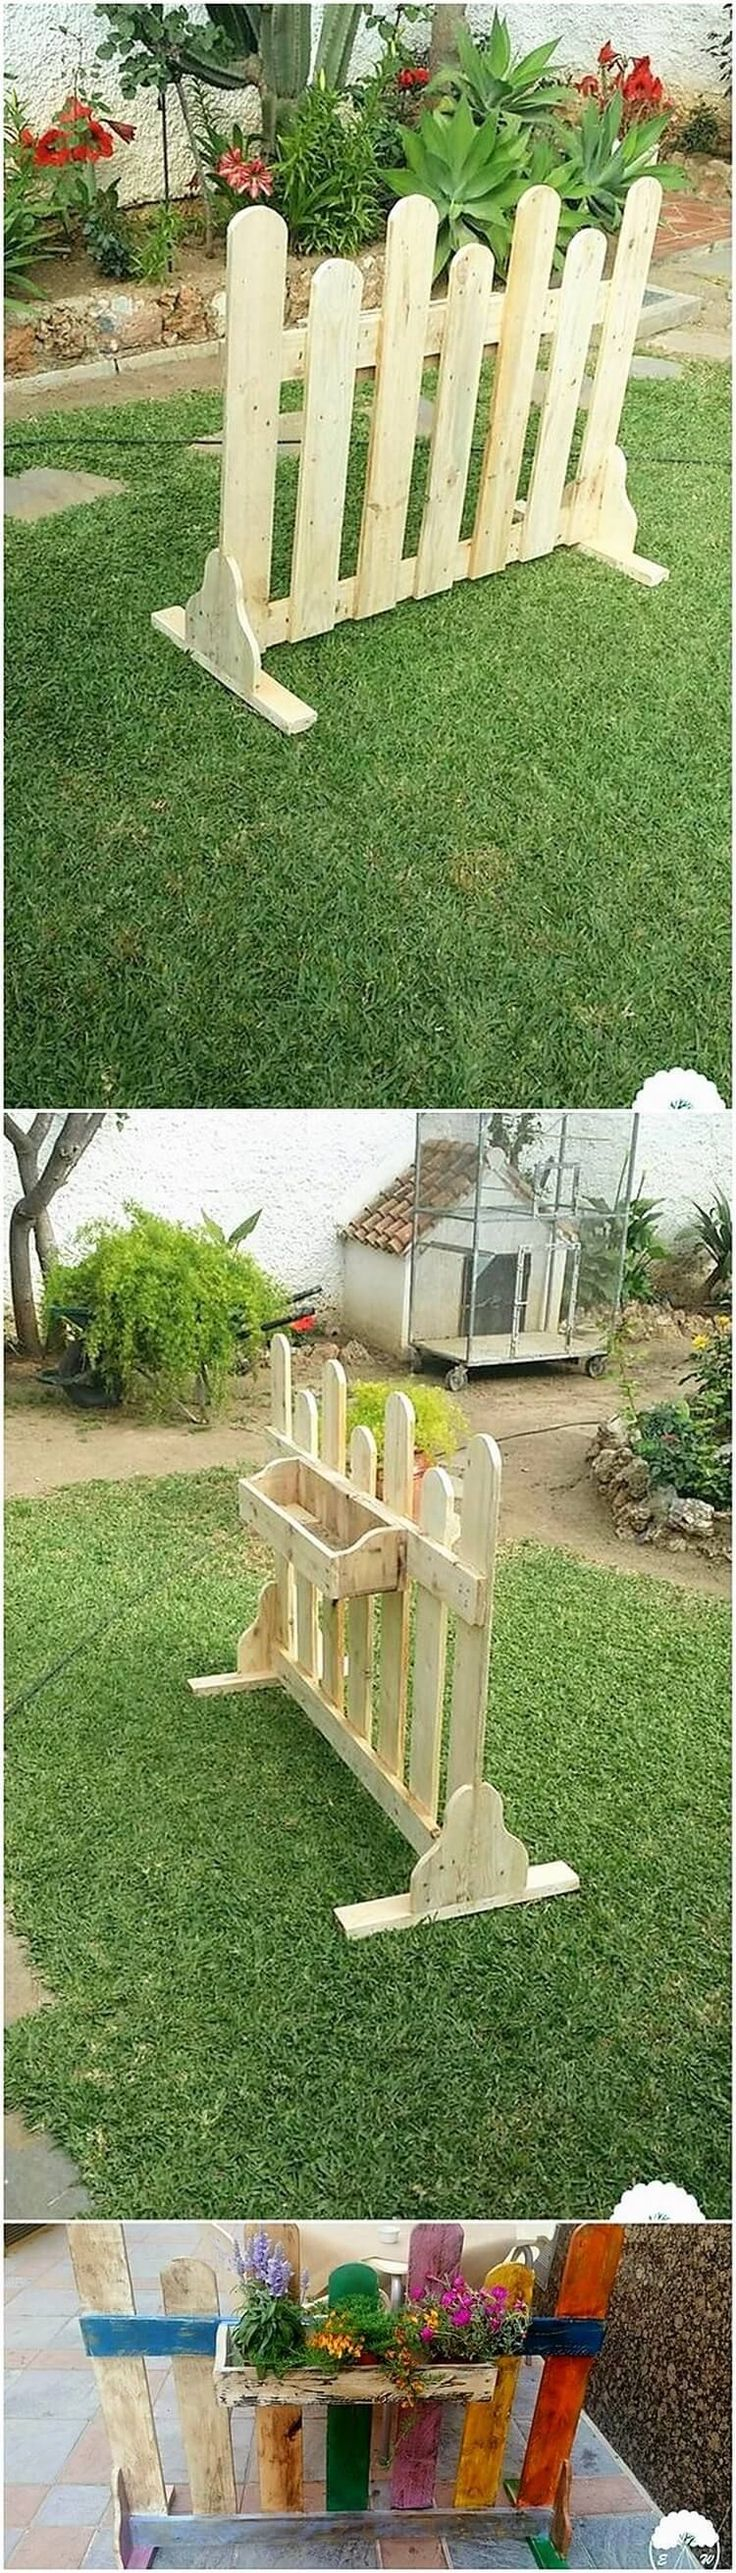 Yet a small but quite an inspiring looking garden fence with planter design has been put forward in this image as manufactured with wood pallet use. It is miniature in sizing so you can probably make it place in any corner of the garden. It would look catchier by making it add with floral effect piece. #palletoutdoorfurniture